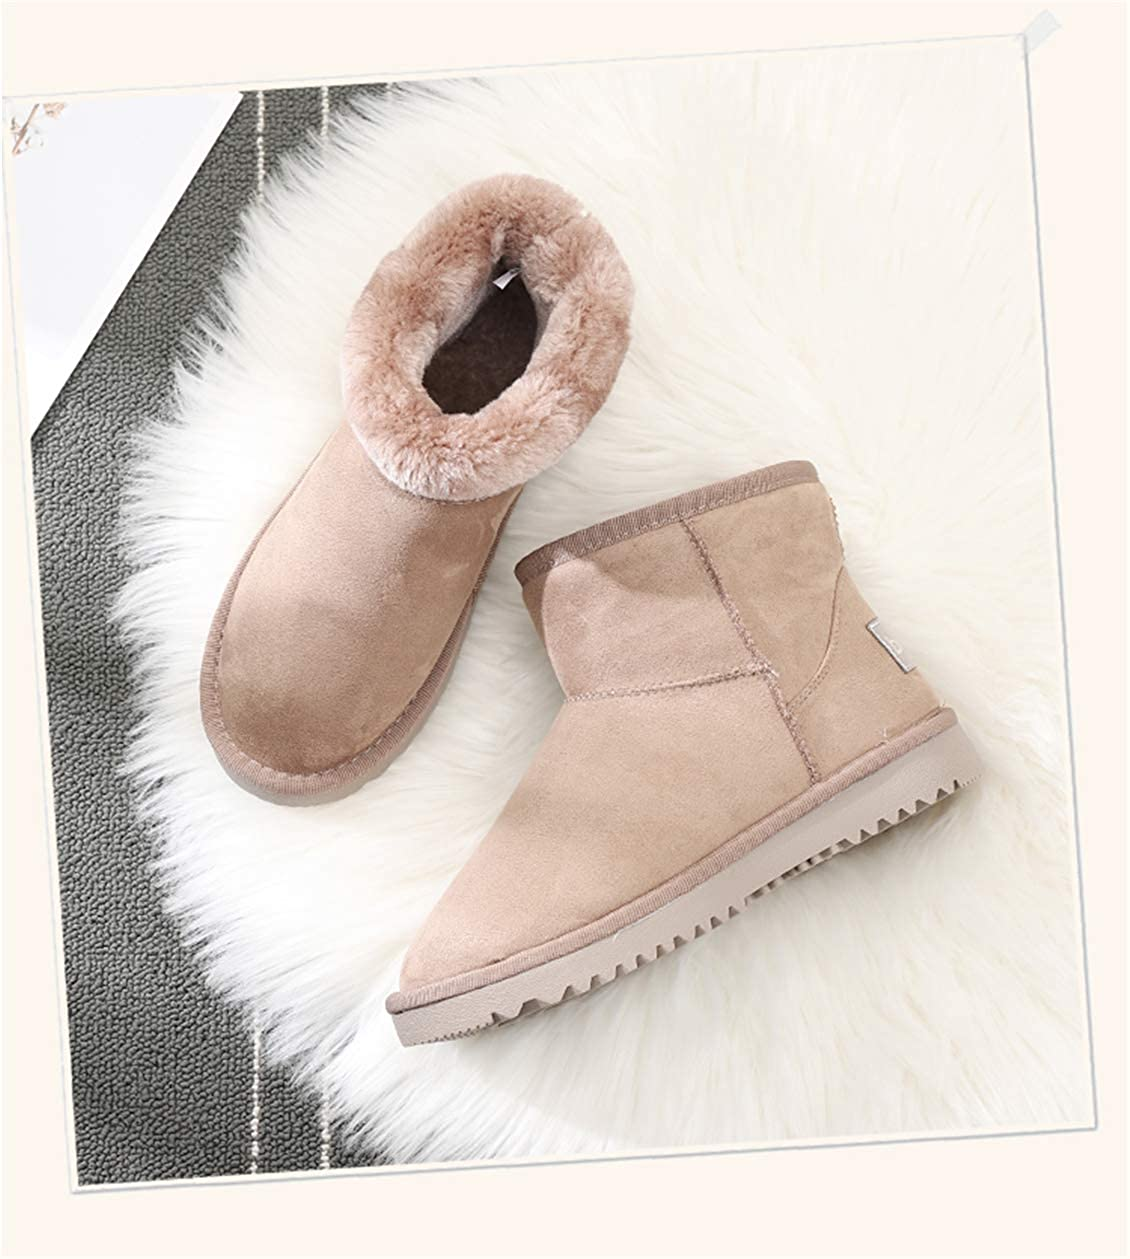 HZMY Womens Winter Resistant Snow Warm Boots Gift Fashion Christmas Buckskin Short Boots